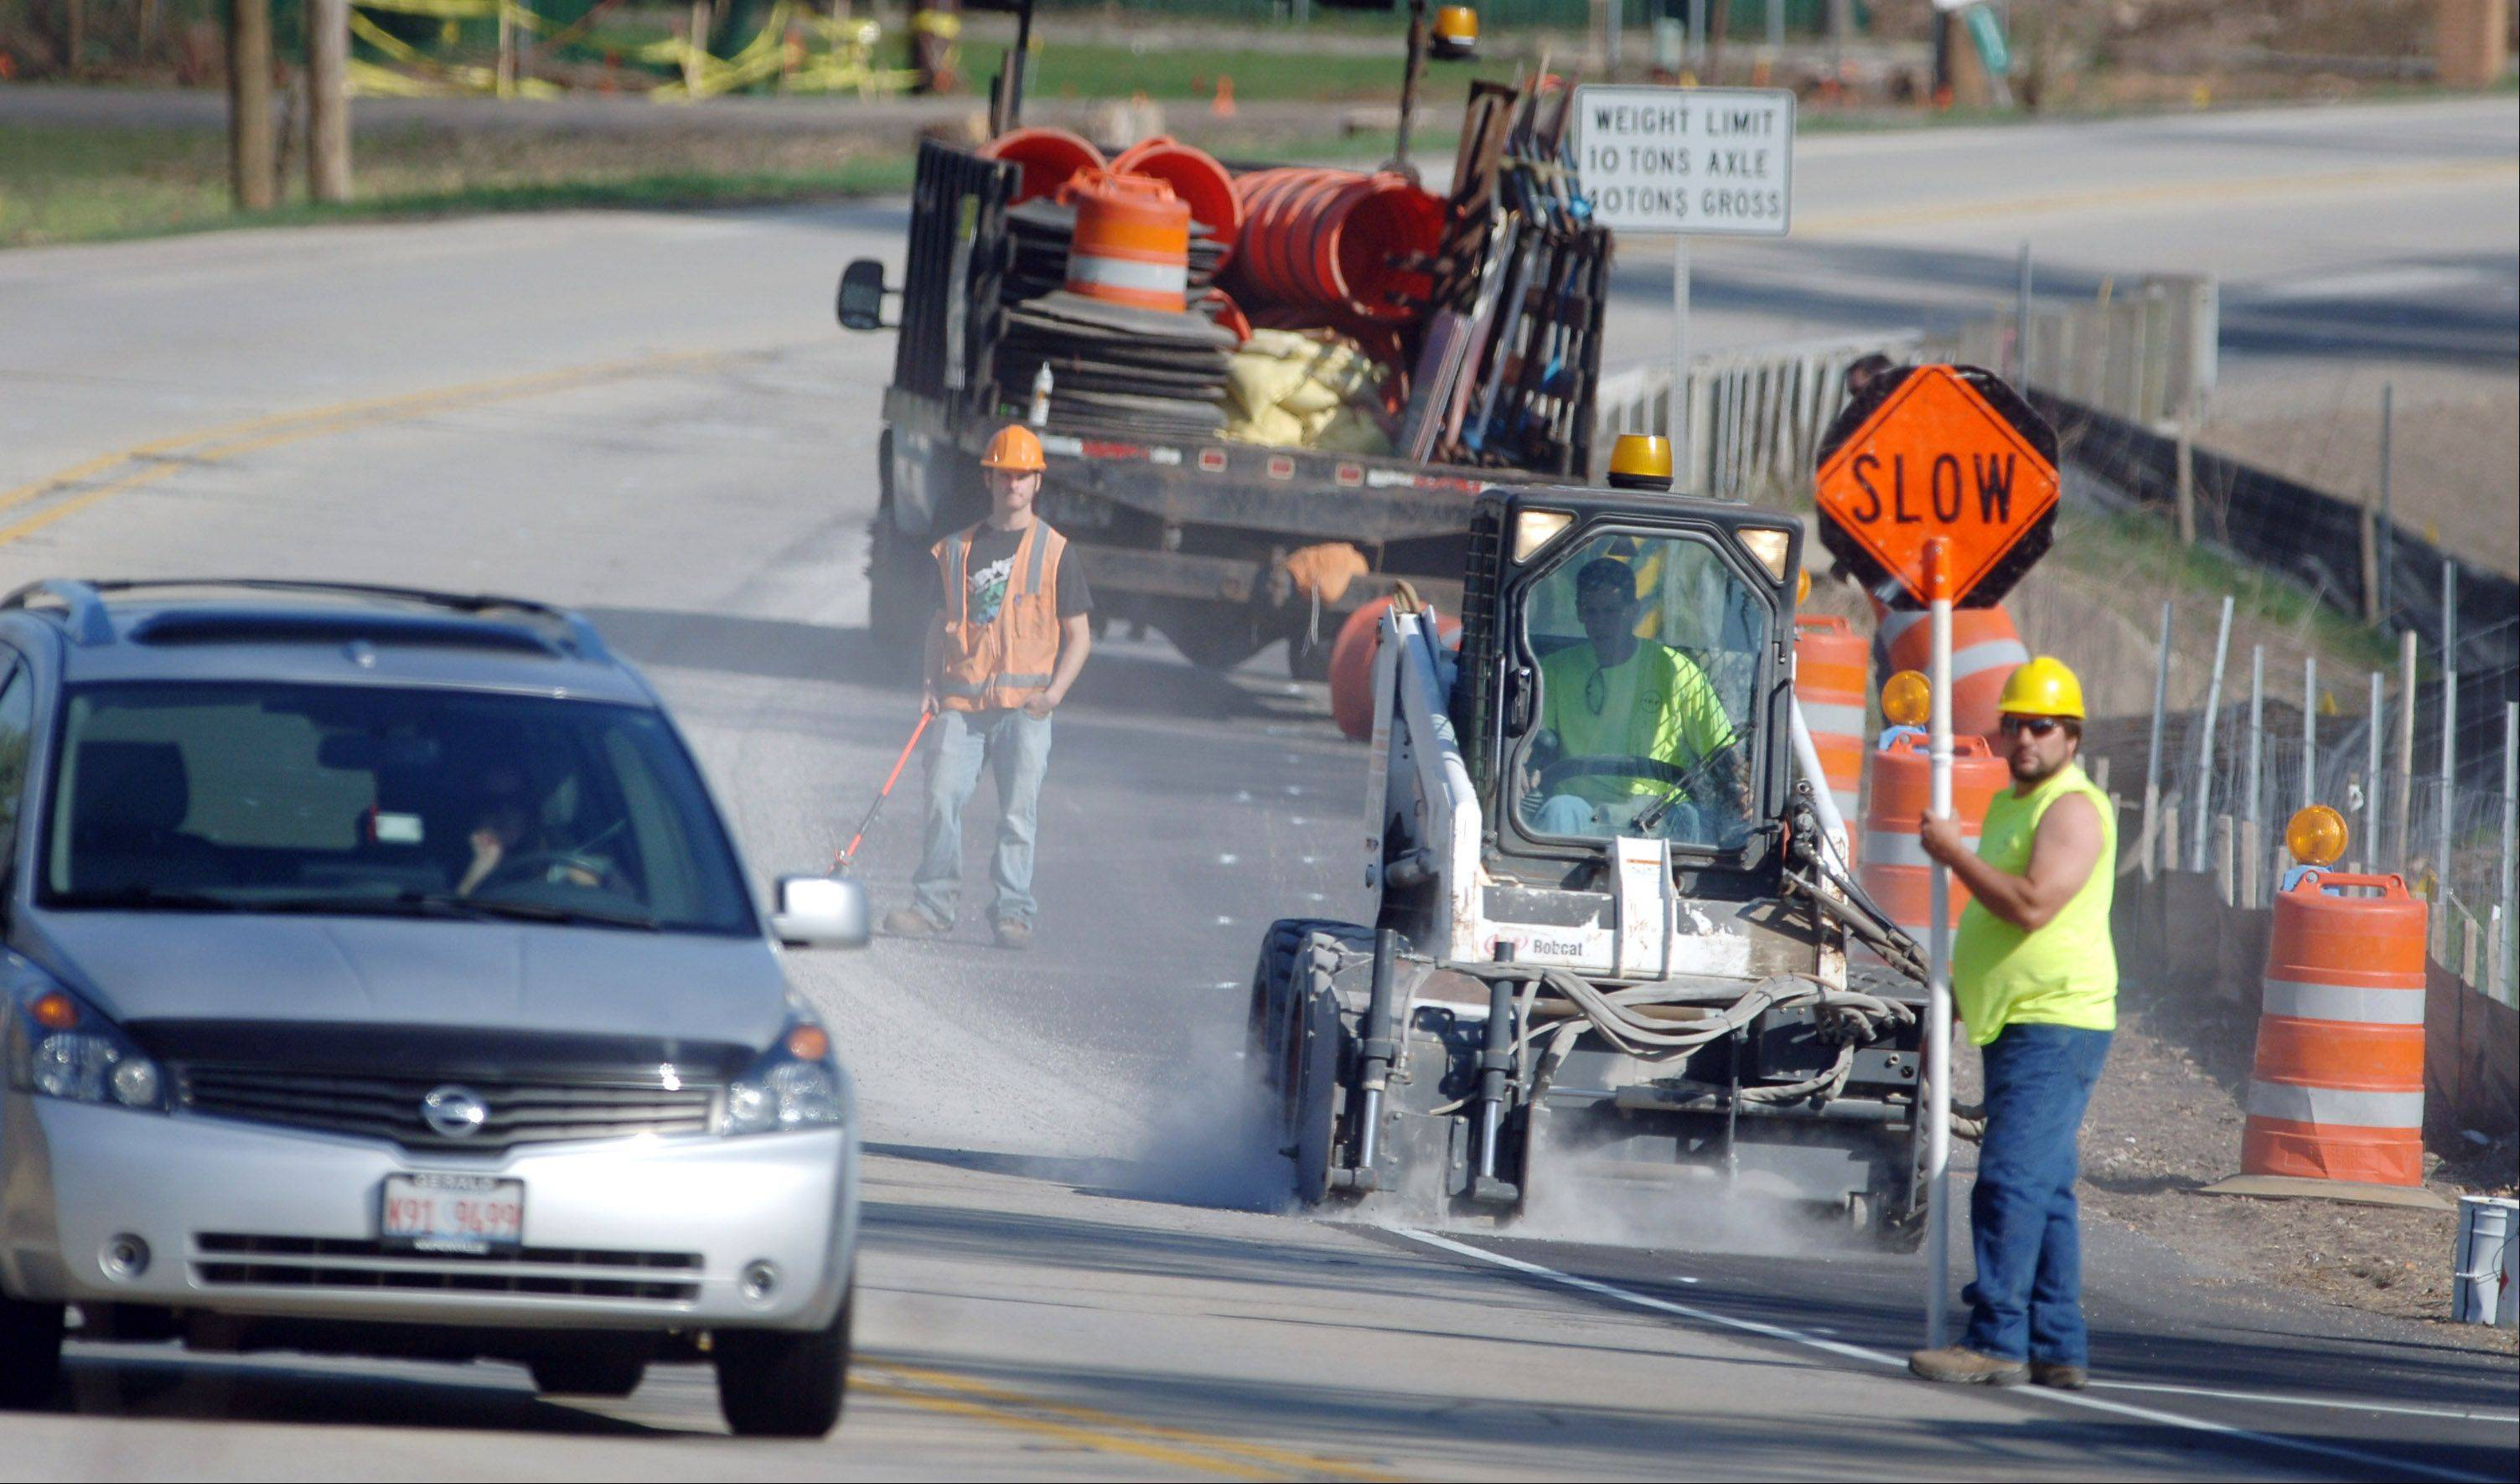 Crews remove painted lane markers Thursday morning to make way for new traffic patterns along Milwaukee Avenue north of Libertyville.